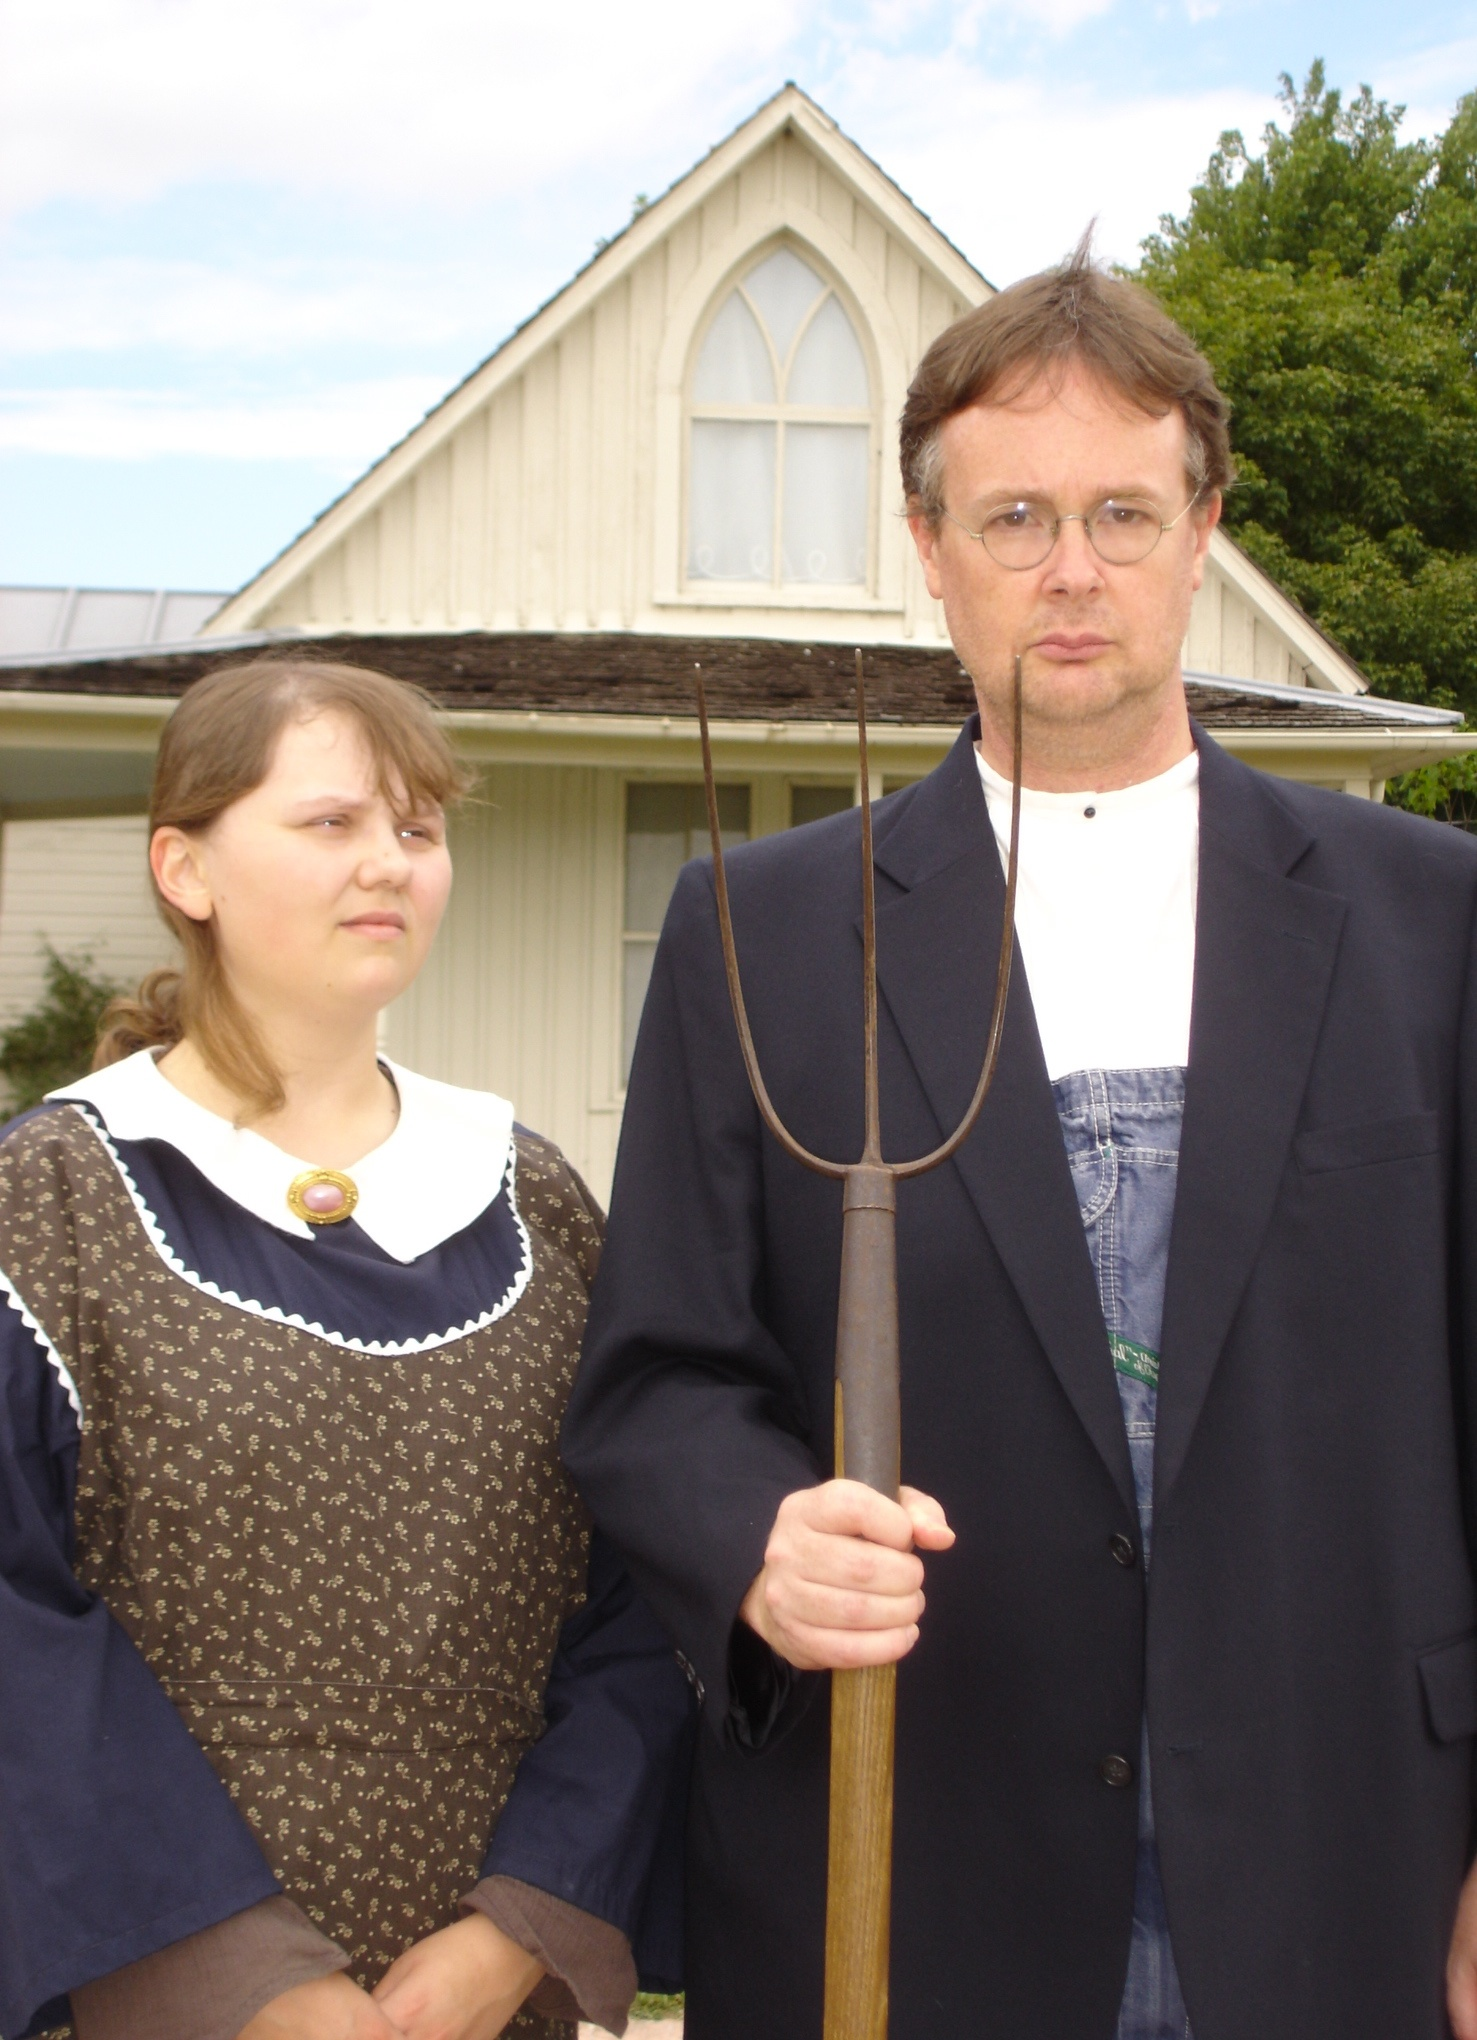 FileAmerican Gothic House Picture Takenjpeg